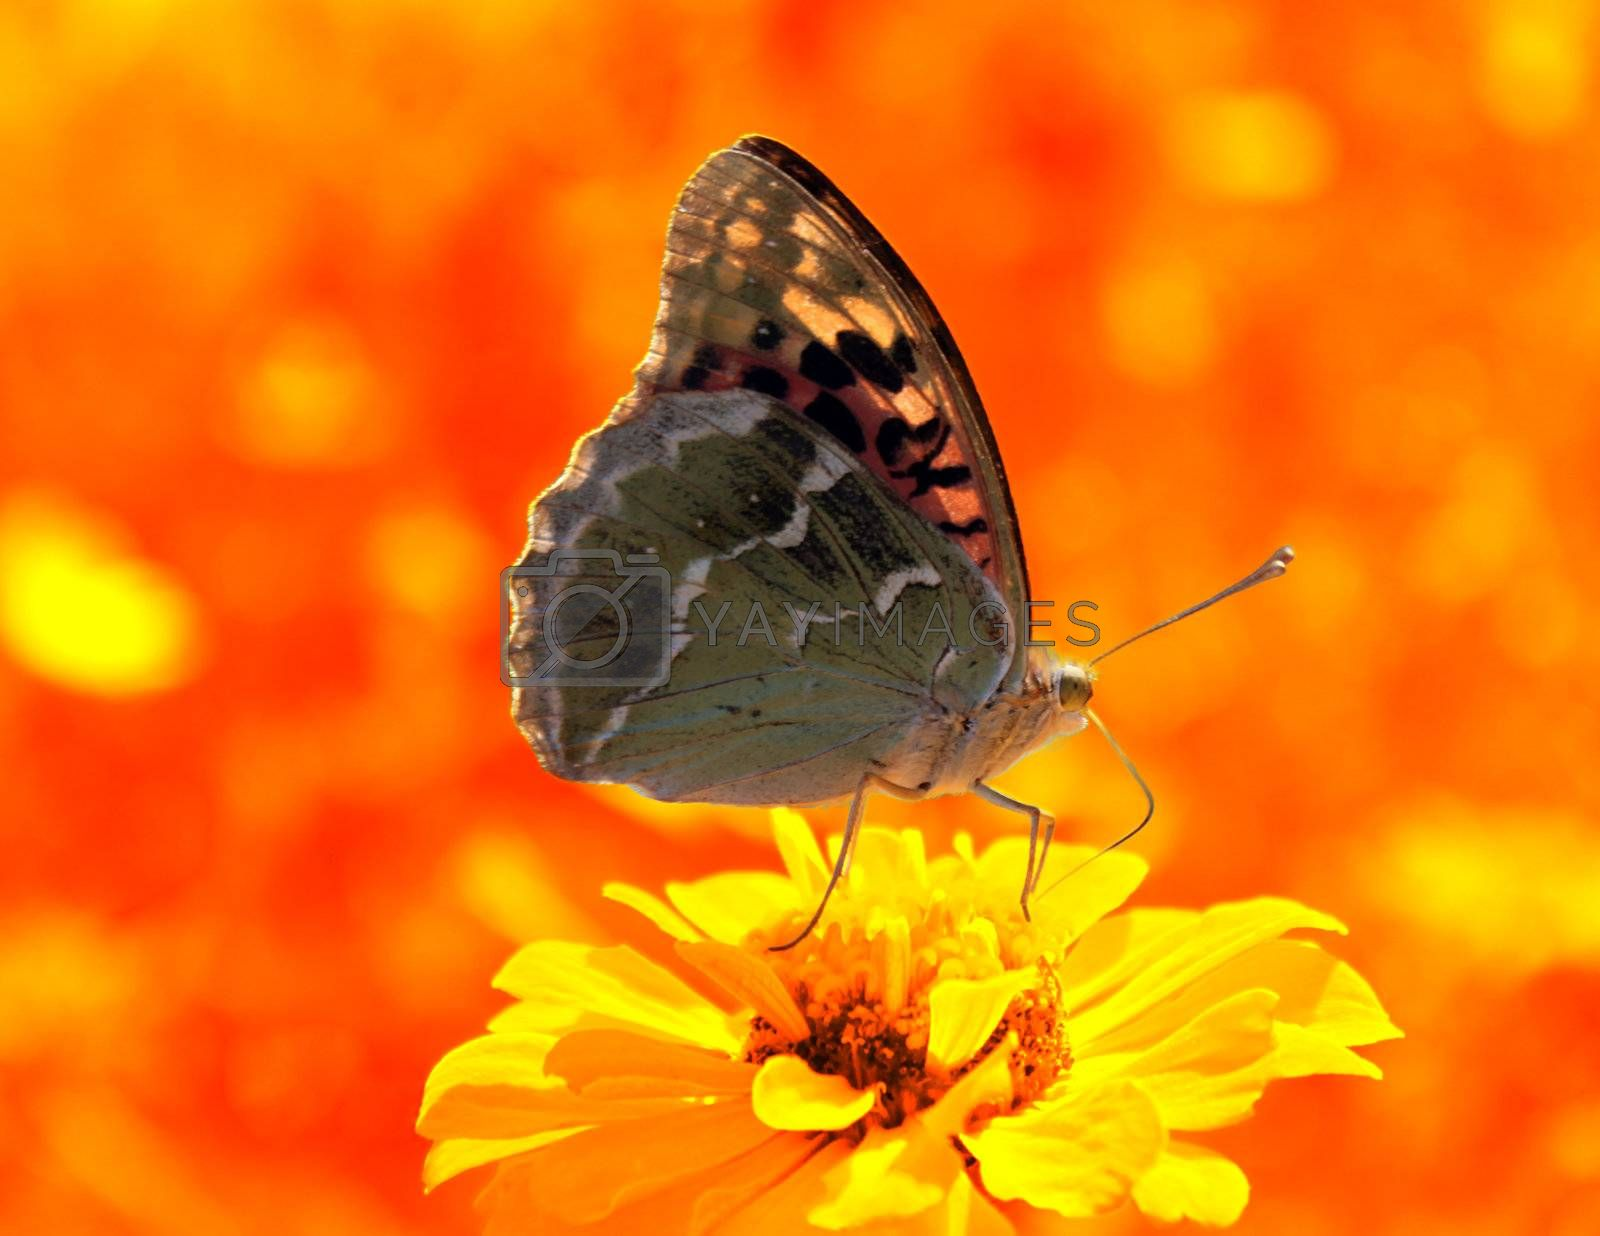 butterfly (Silver-washed Fritillary) sitting on flower (zinnia) in warm colors